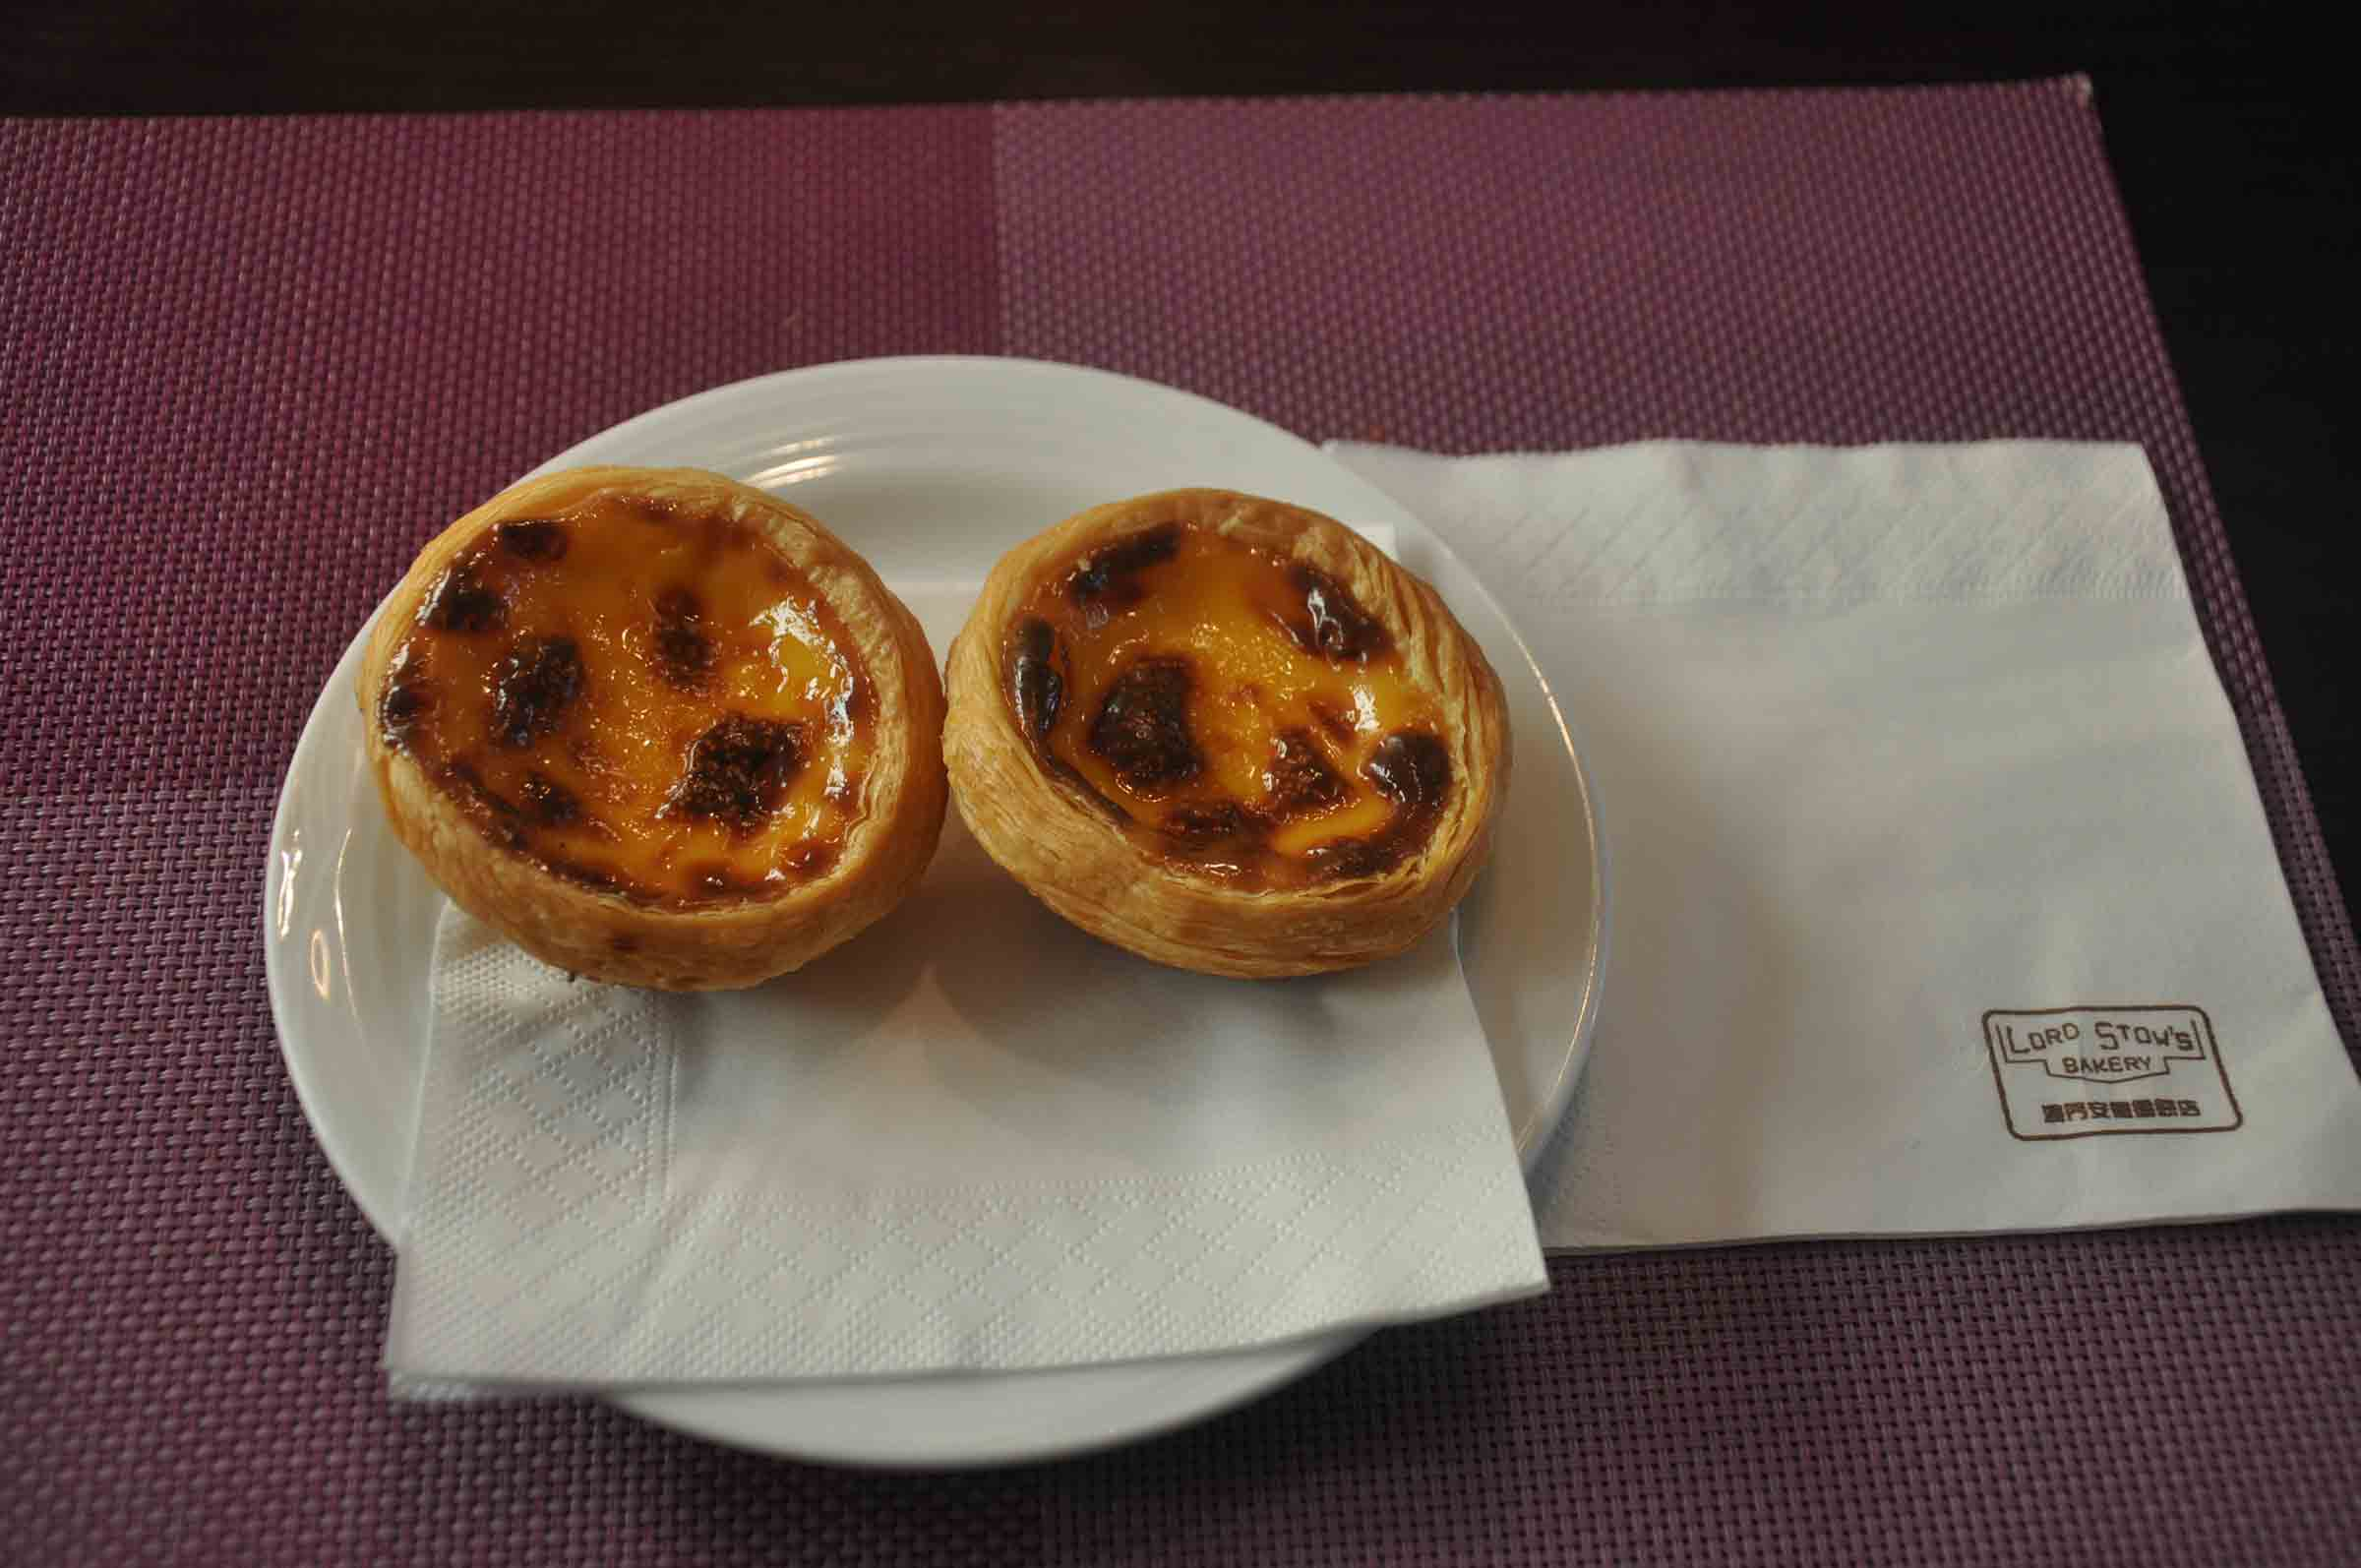 Lord Stows egg tart